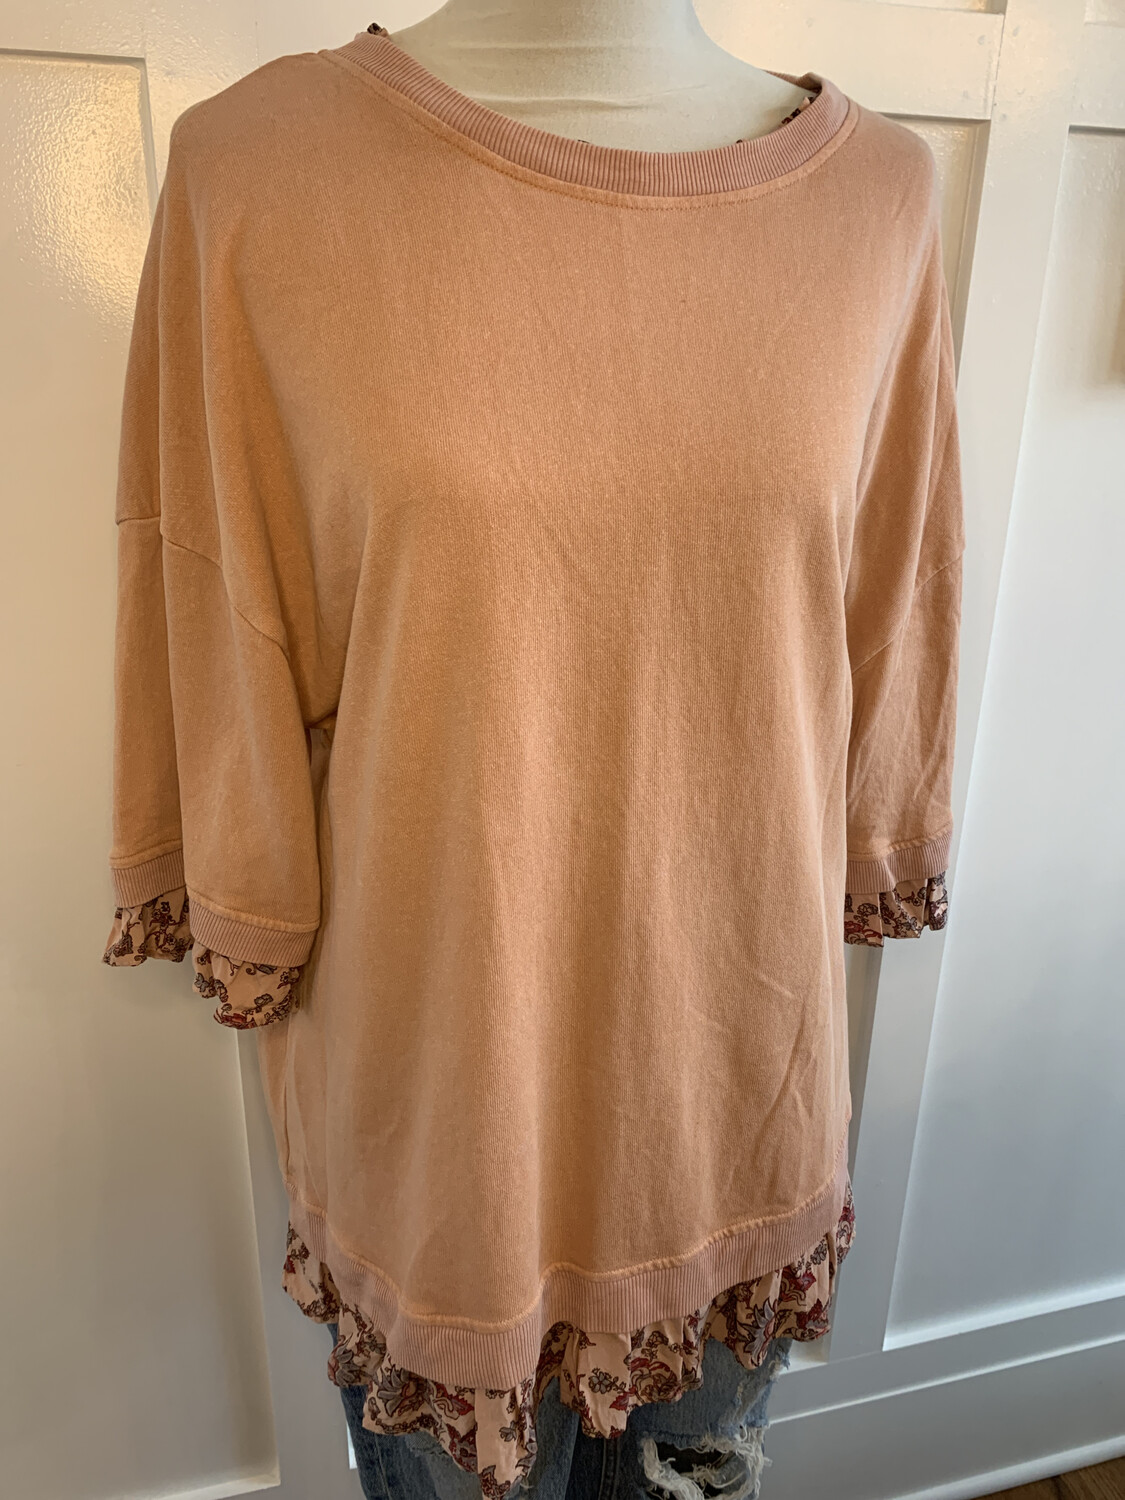 Easel Faded Pink Sweater w/ Floral Trim - L